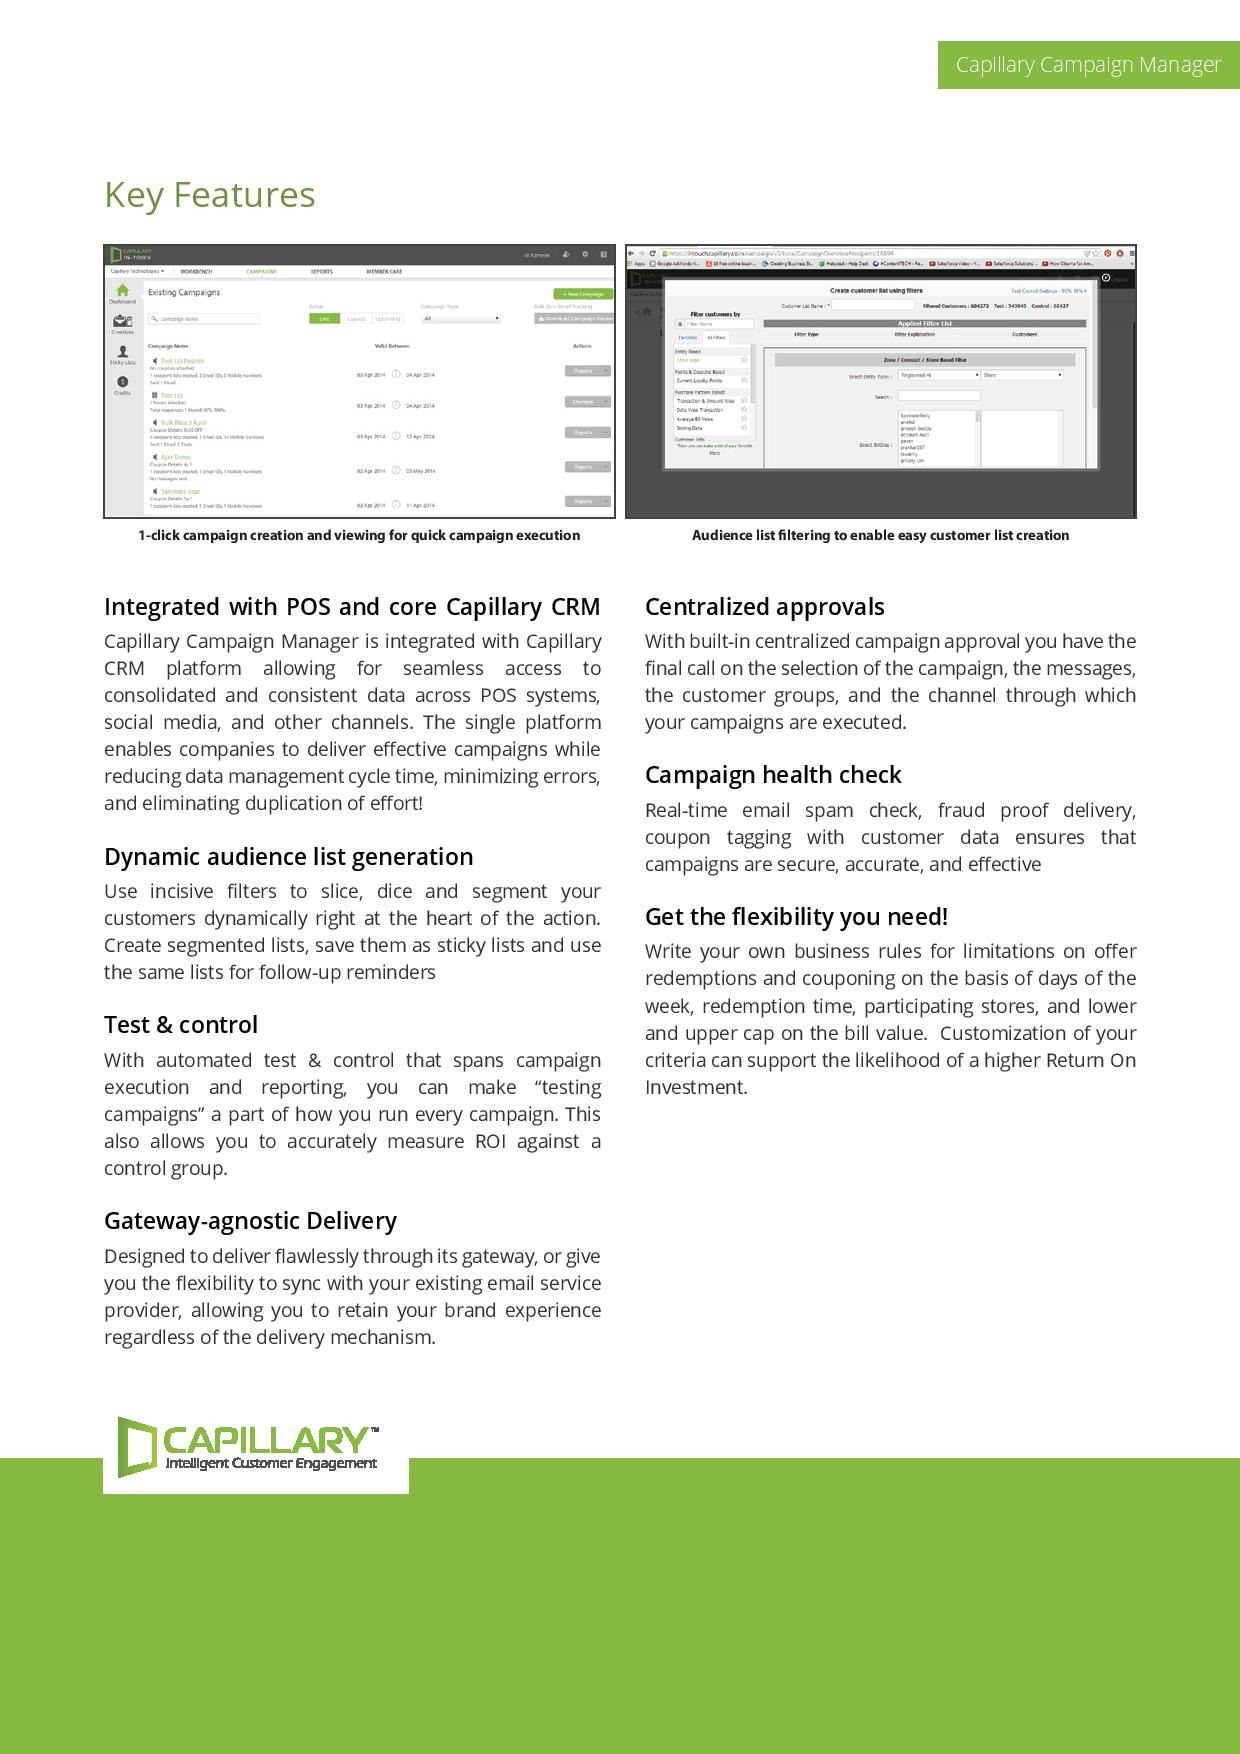 capillary_datasheet_campaign-manager-page-002